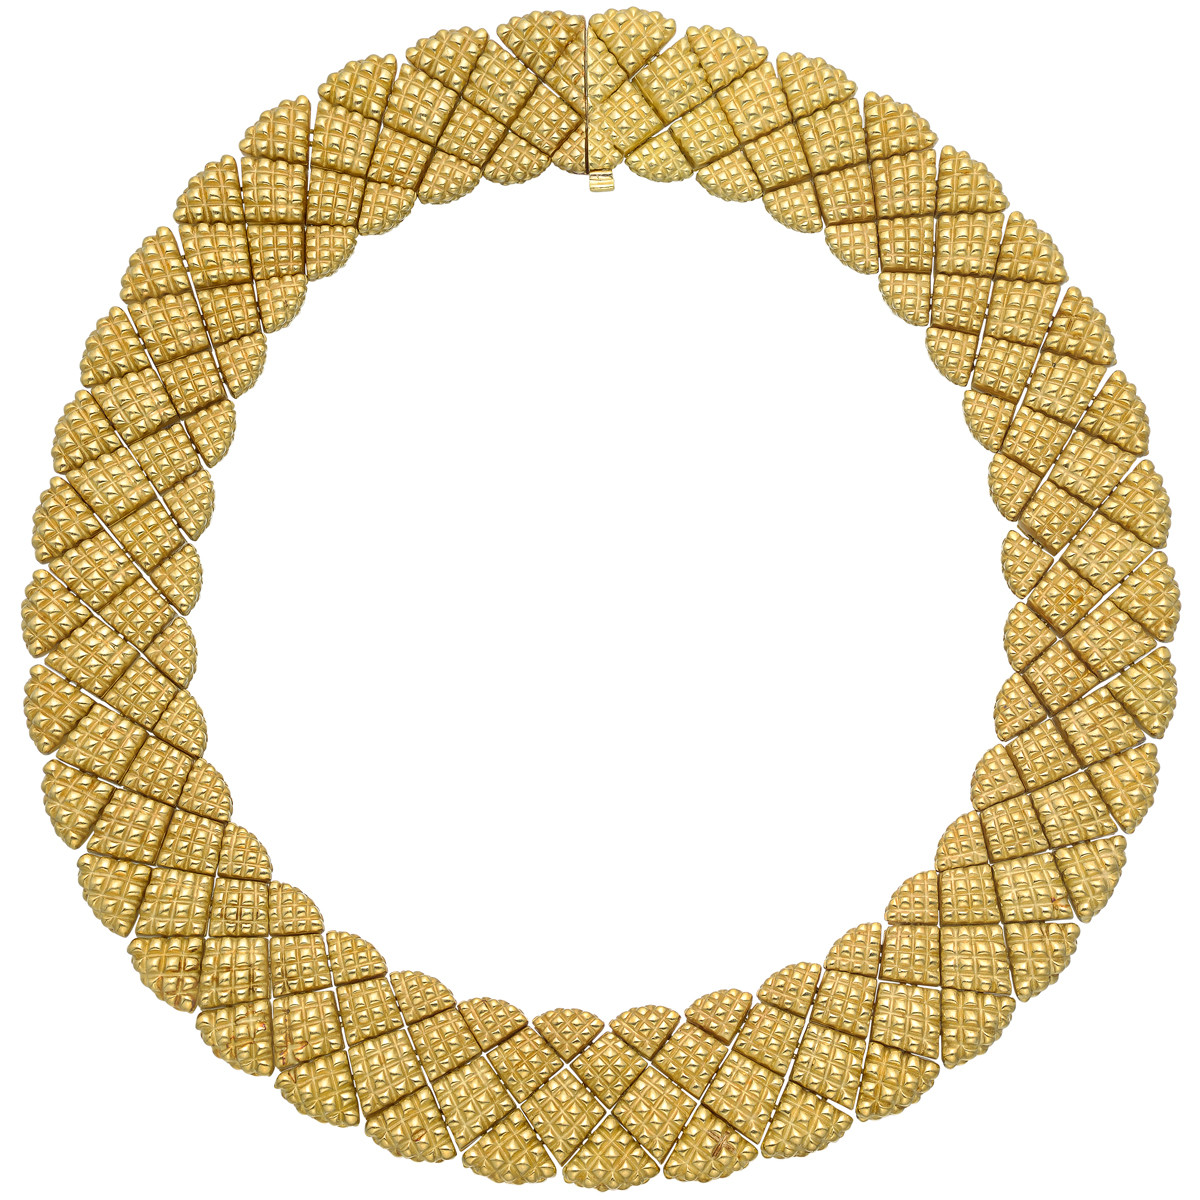 Geometric 18k Yellow Gold Collar Necklace